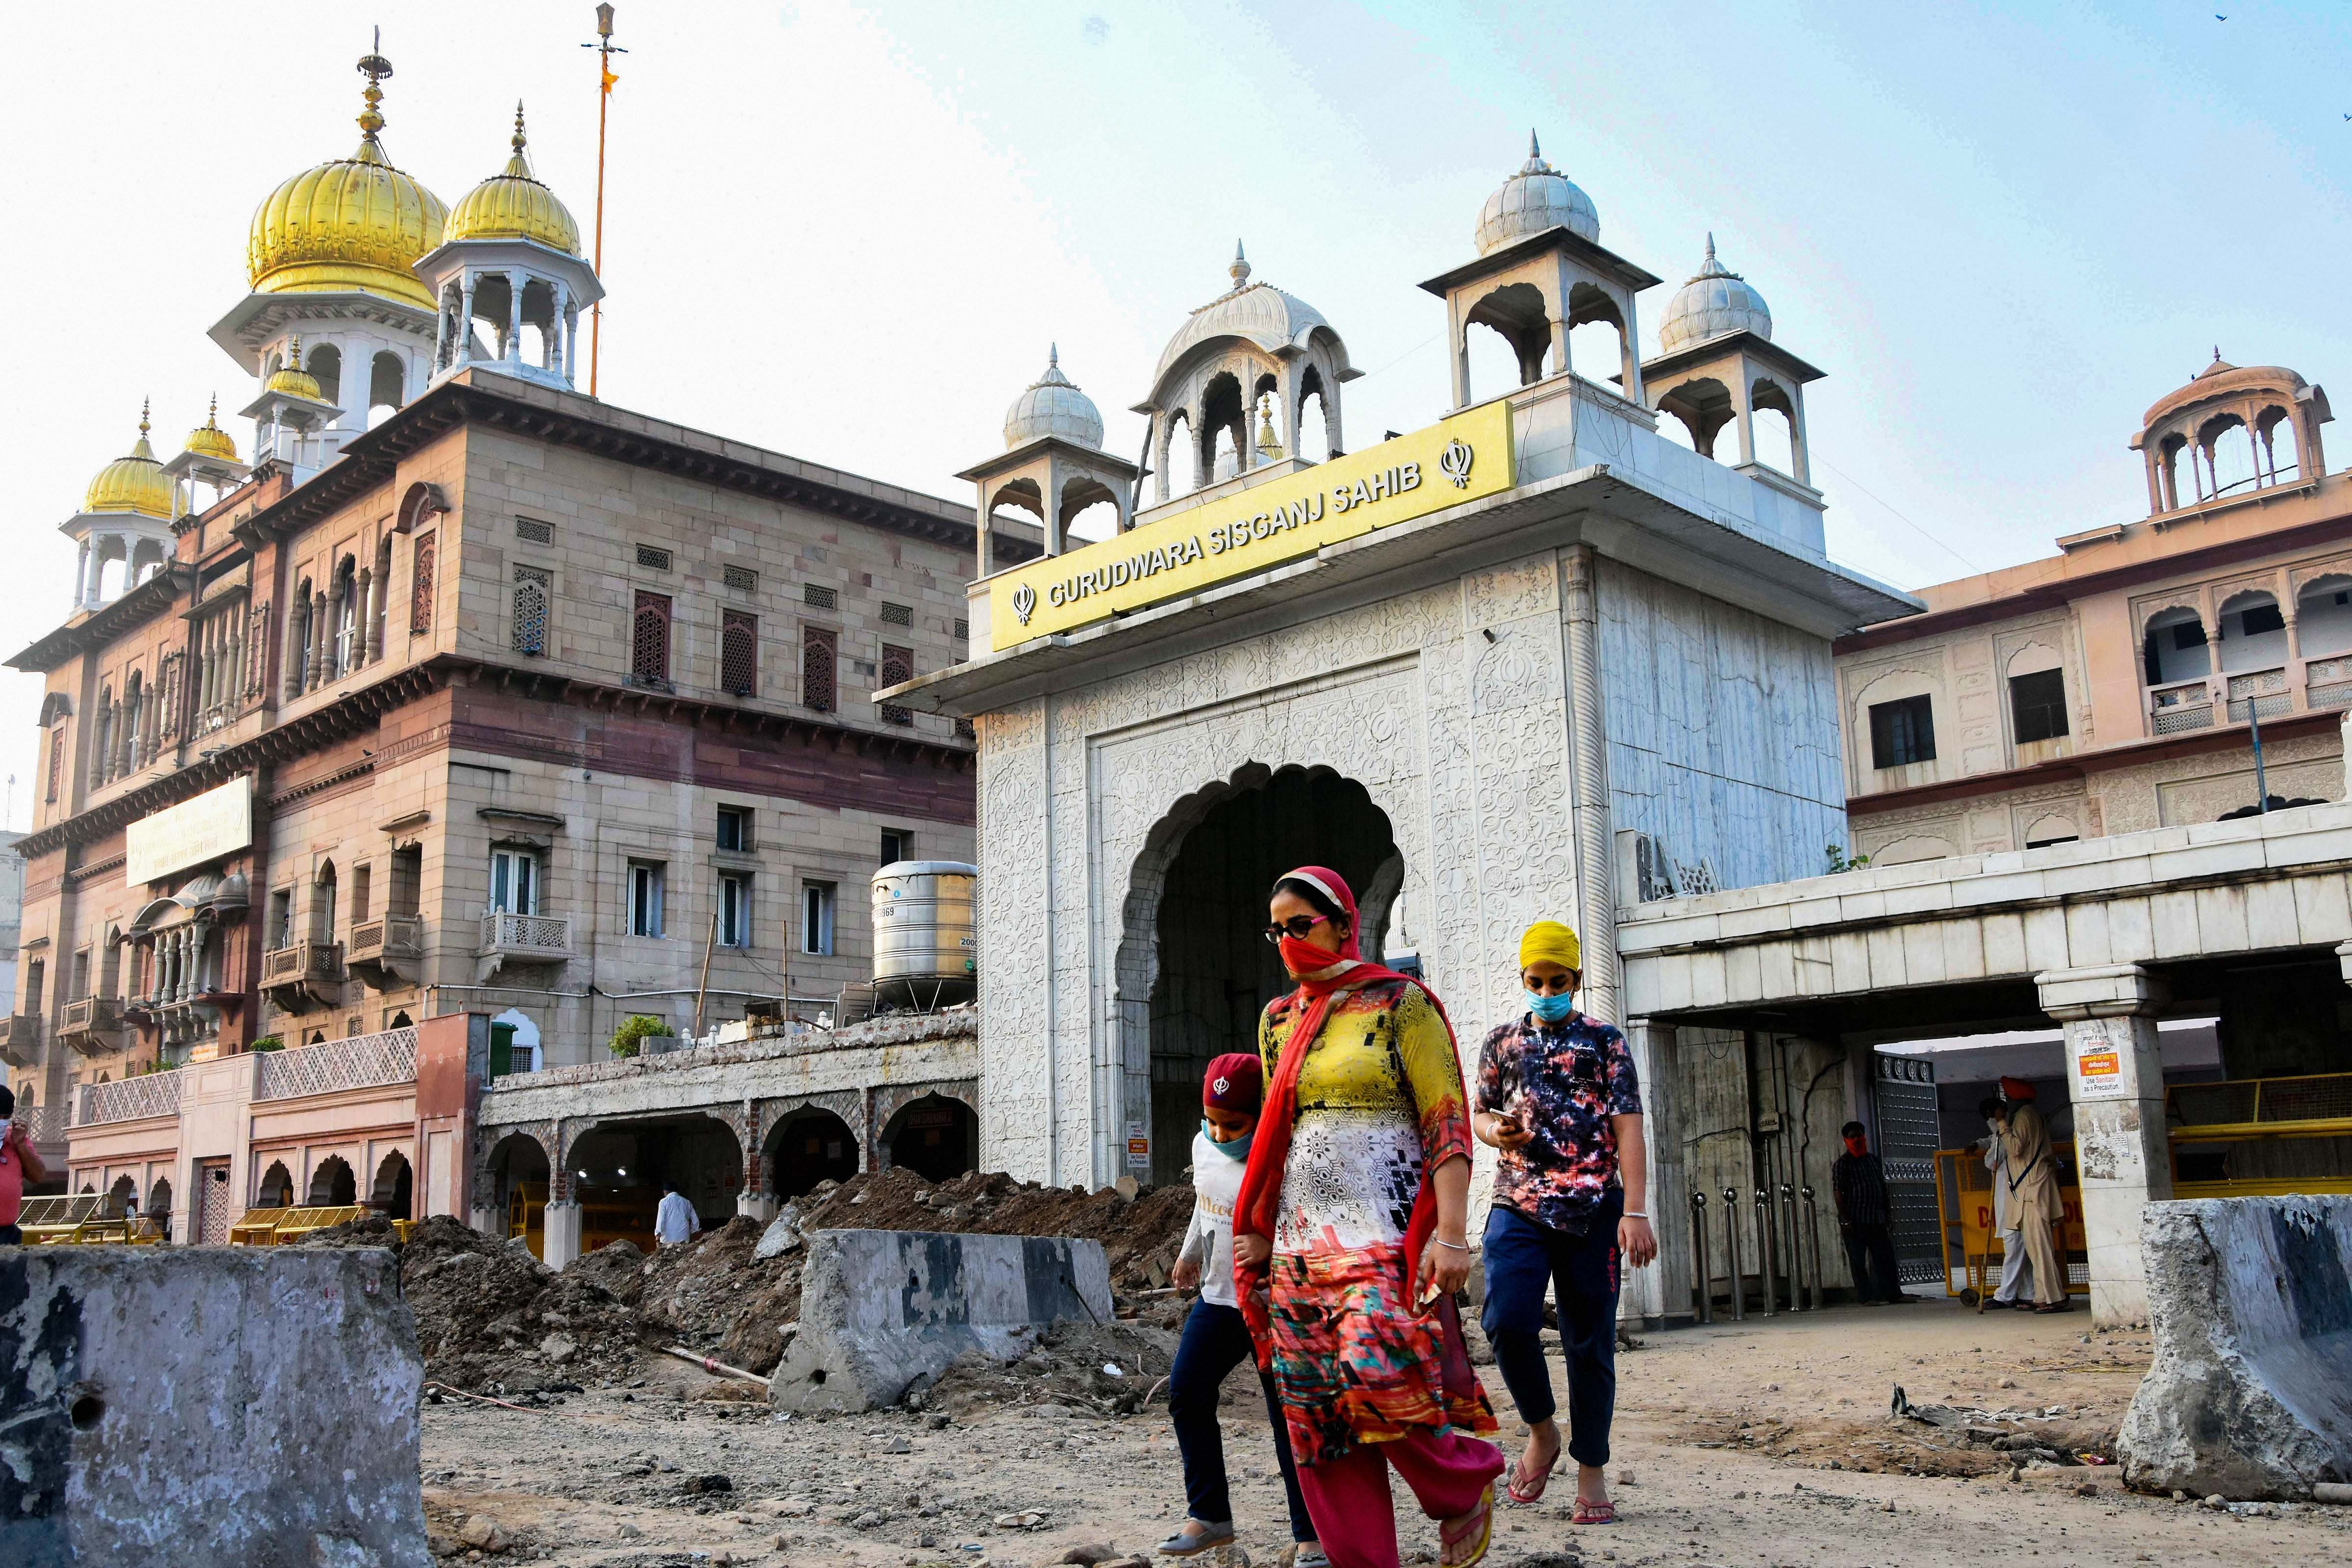 Devotees step out of Gurudwara Sis Ganj Sahib ji after offering prayers as the authorities permitted to open all religious places with certain restrictions, during the fifth phase of ongoing Covid-19 lockdown, in New Delhi, Monday, June 8, 2020.